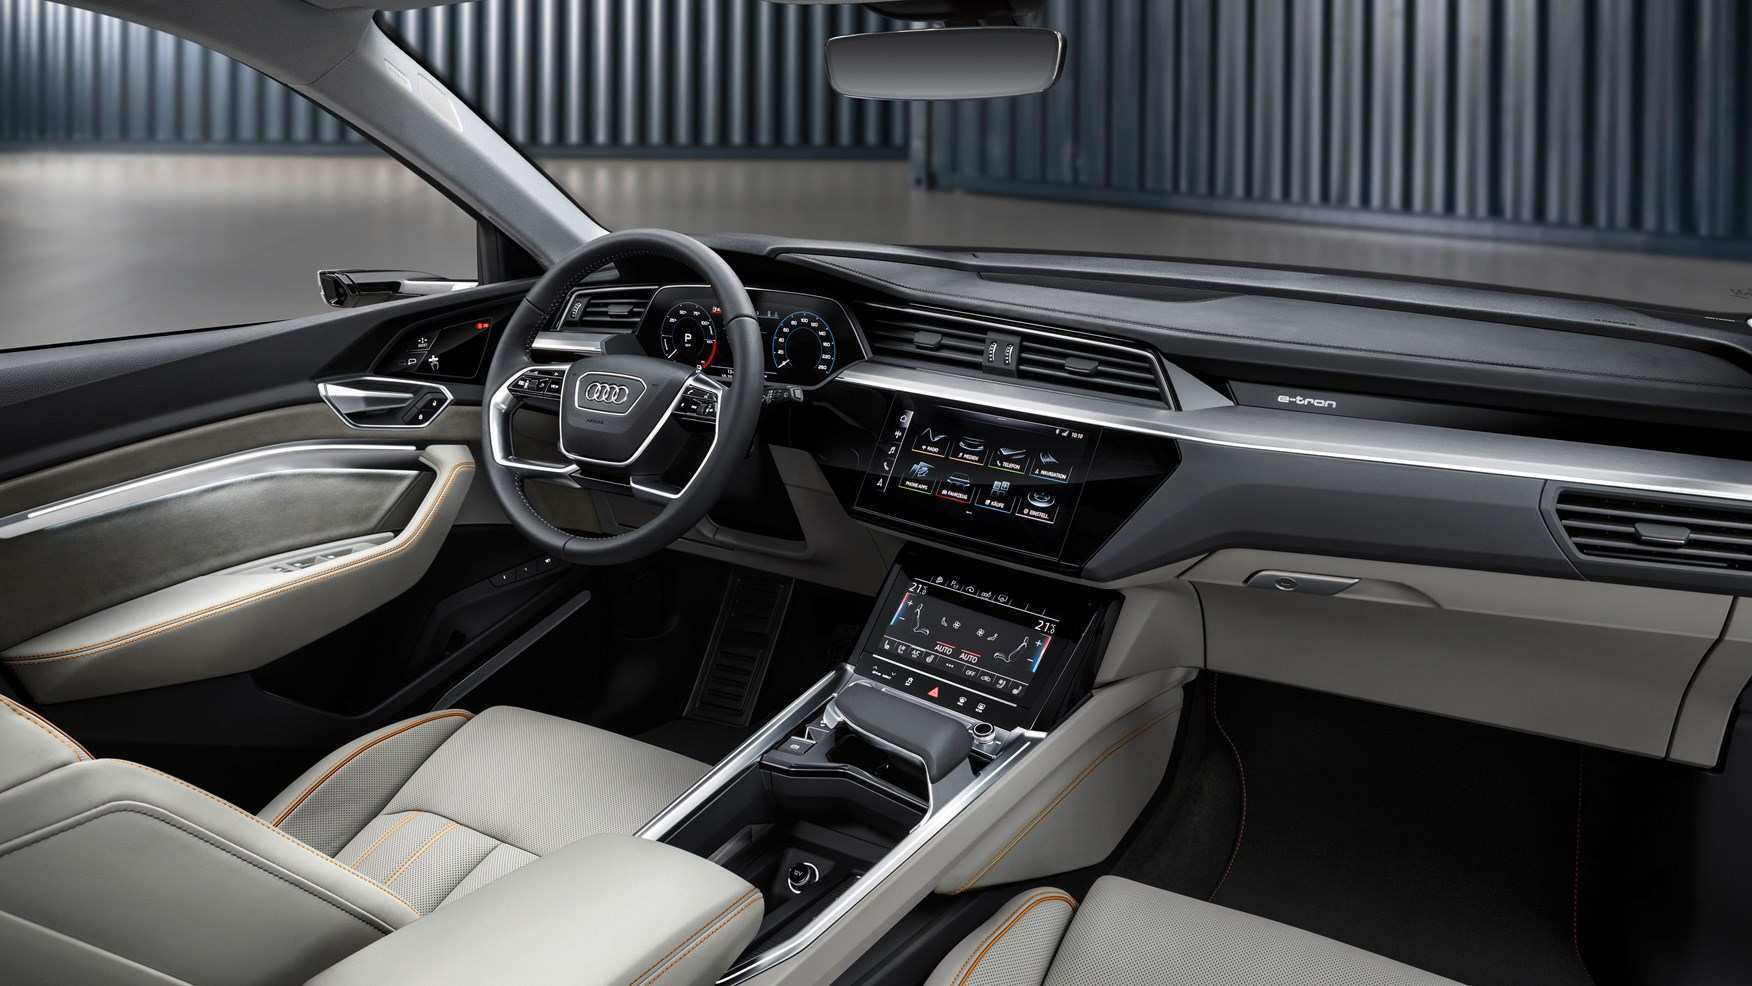 33 Best 2019 Audi E Tron Quattro Cost Prices